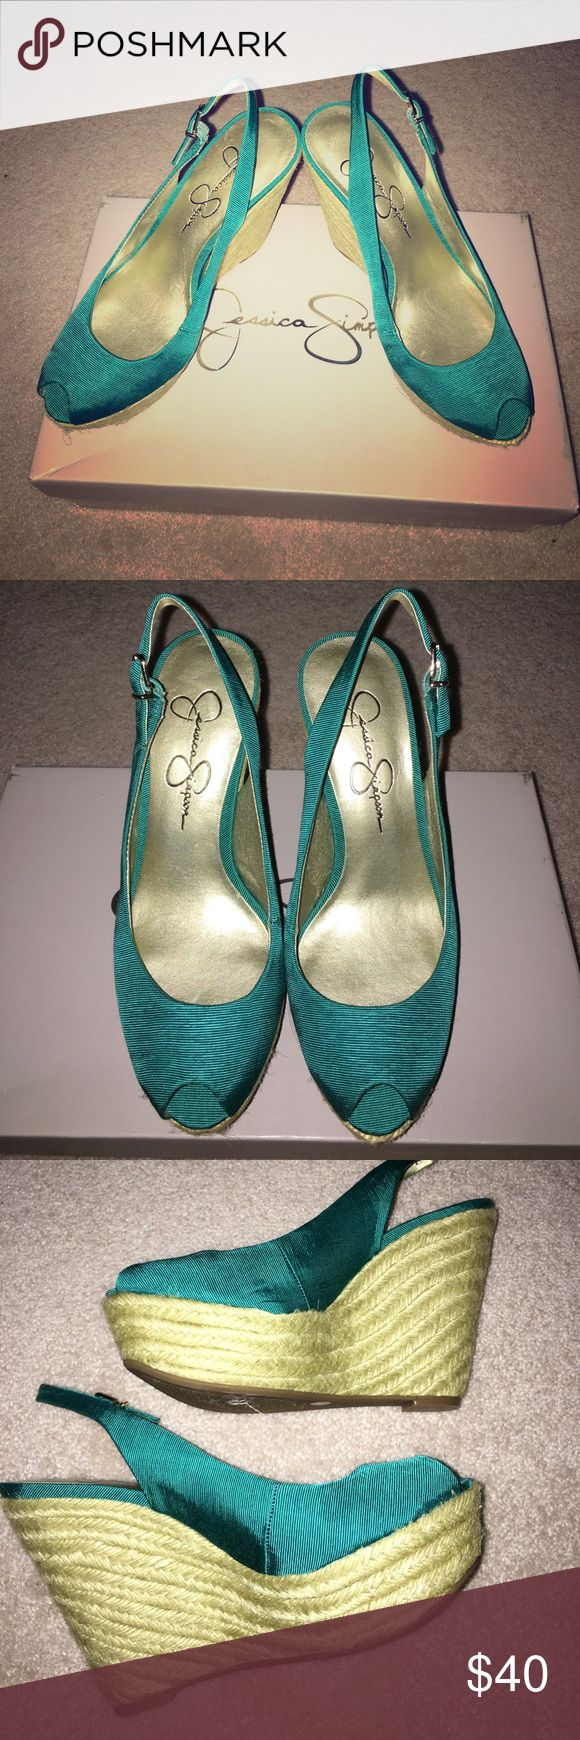 Jessica Simpson teal wedges - New never worn. Jessica Simpson teal wedges - New never worn. Fabric uppers, 4 1/2 inch wedge platform. Size 5.5M. Purchased from Nordstrom... comes with box. Jessica Simpson Shoes Wedges